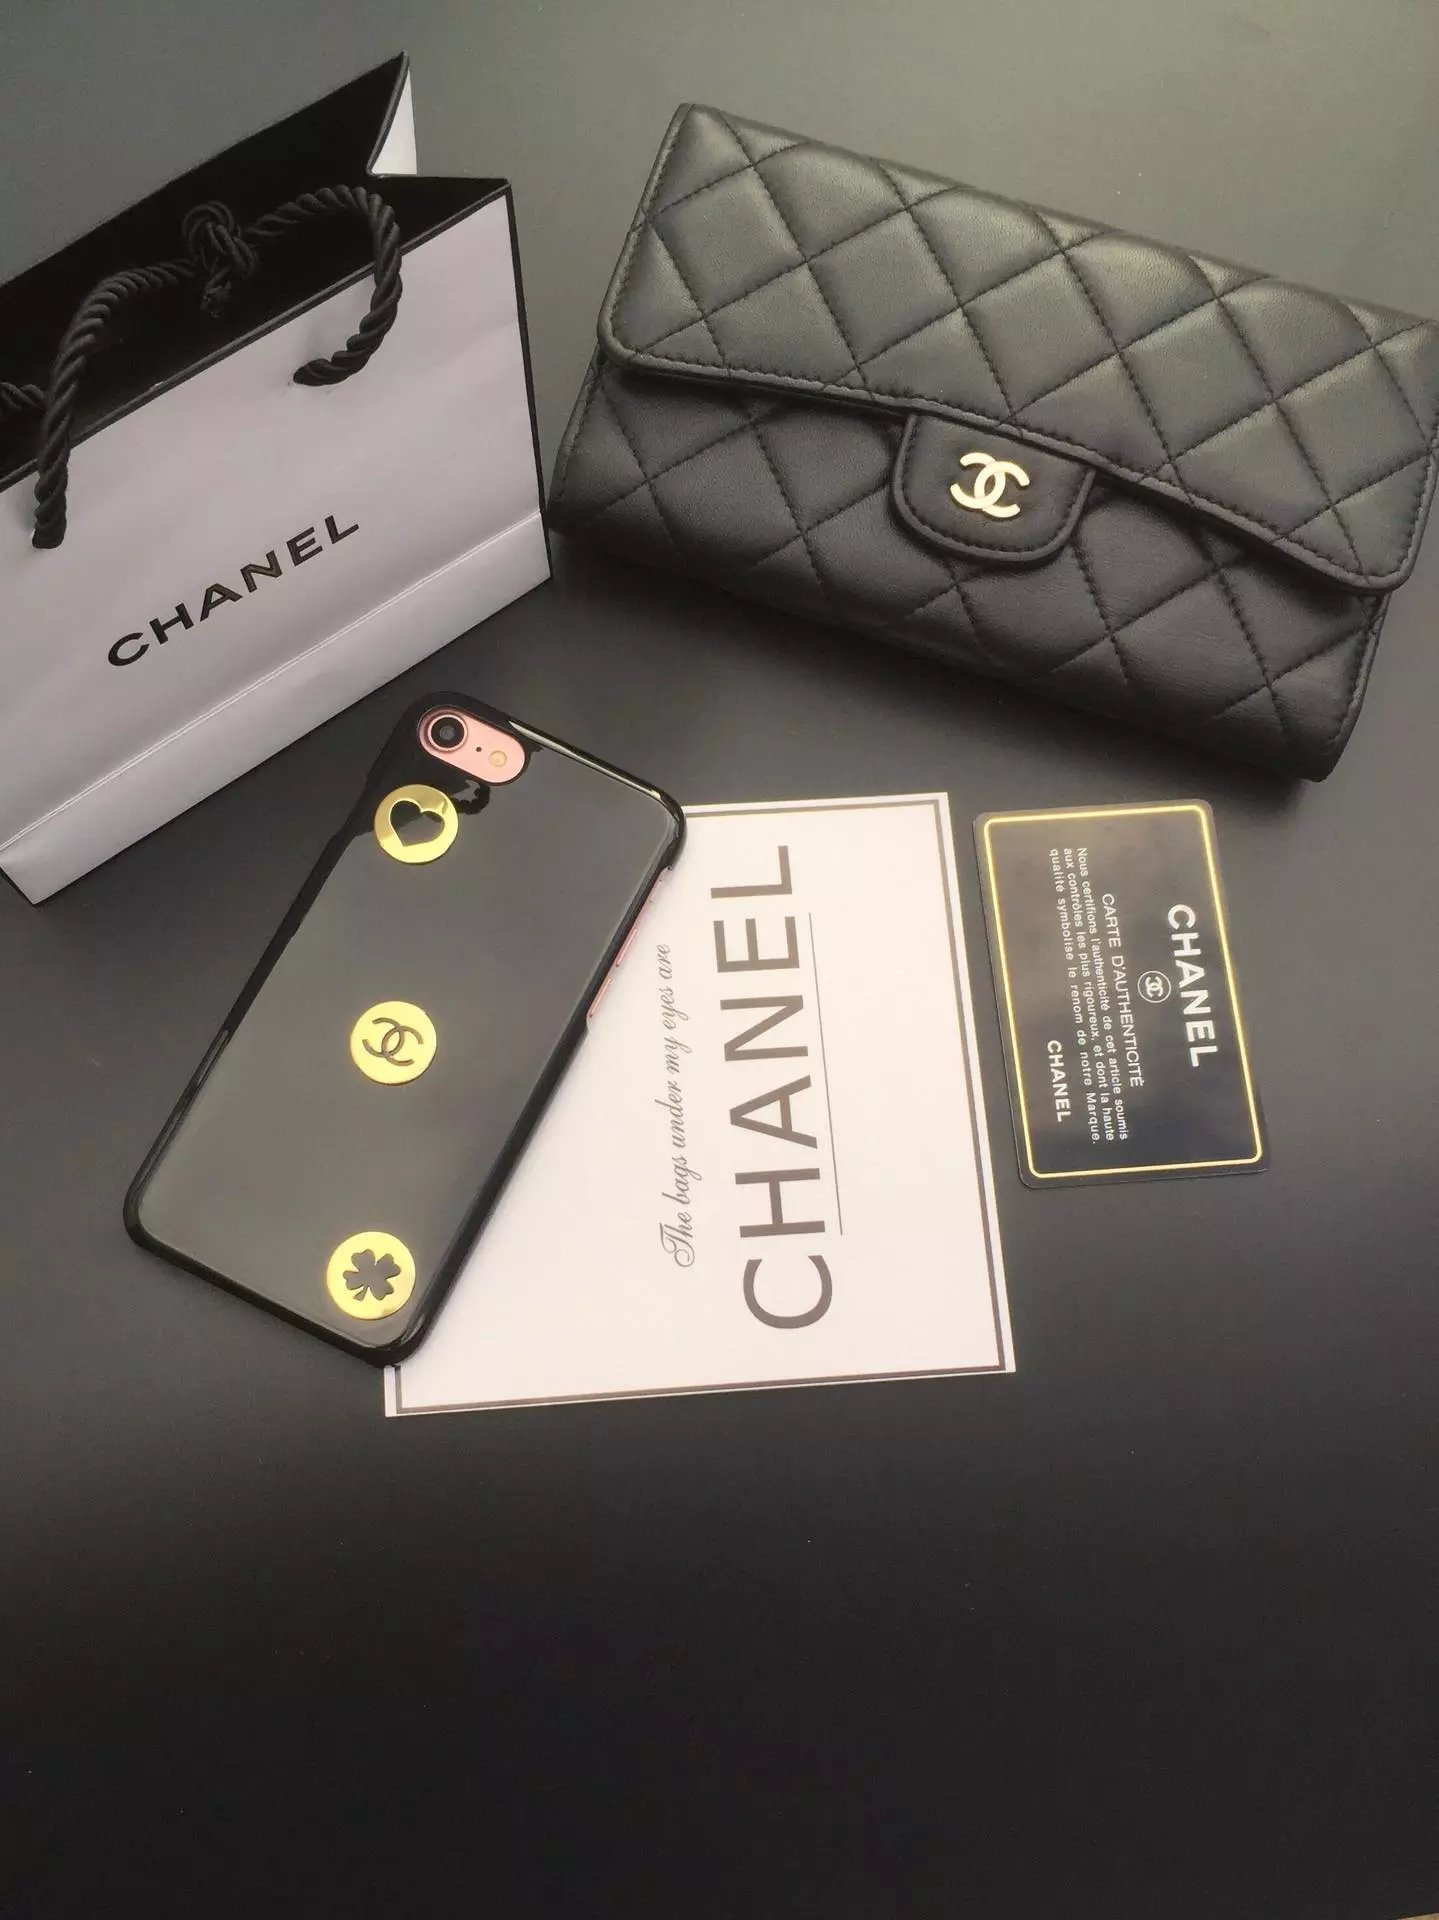 iphone covers for 8 phone cases iphone 8 Chanel iphone 8 case design my own cell phone case ultimate iphone 8 case mophie cases for iphone 8 cell phone case accessories iphone 8 cases apple official iphone 8 case